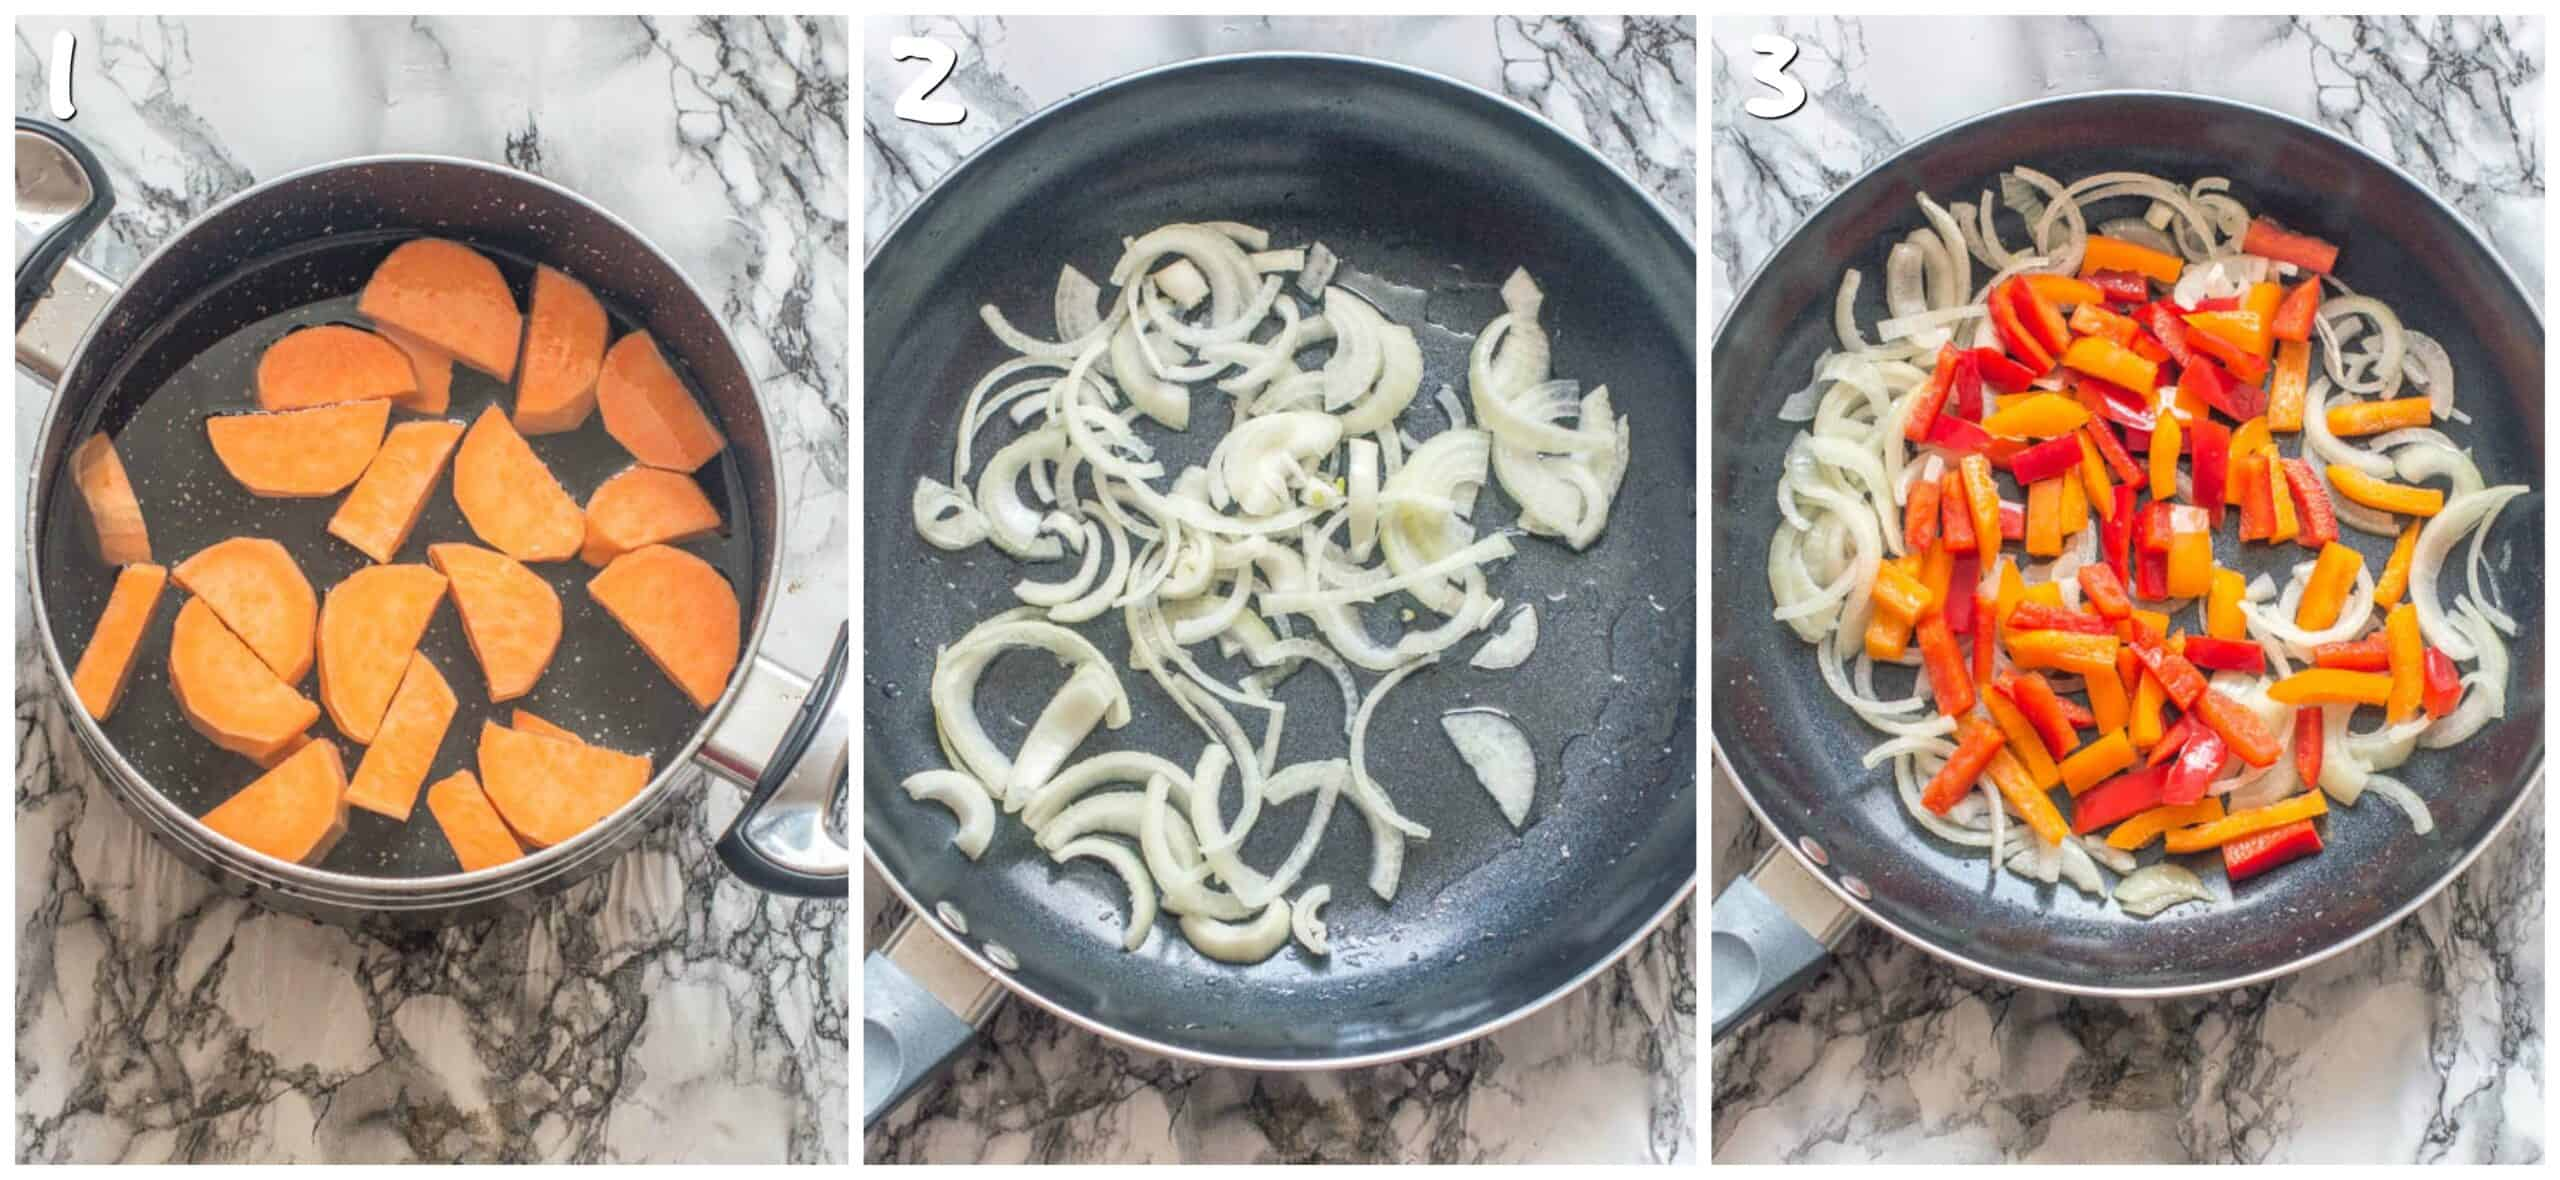 steps 1-3 boiling sweet potatoe and sauteing onions and peppers